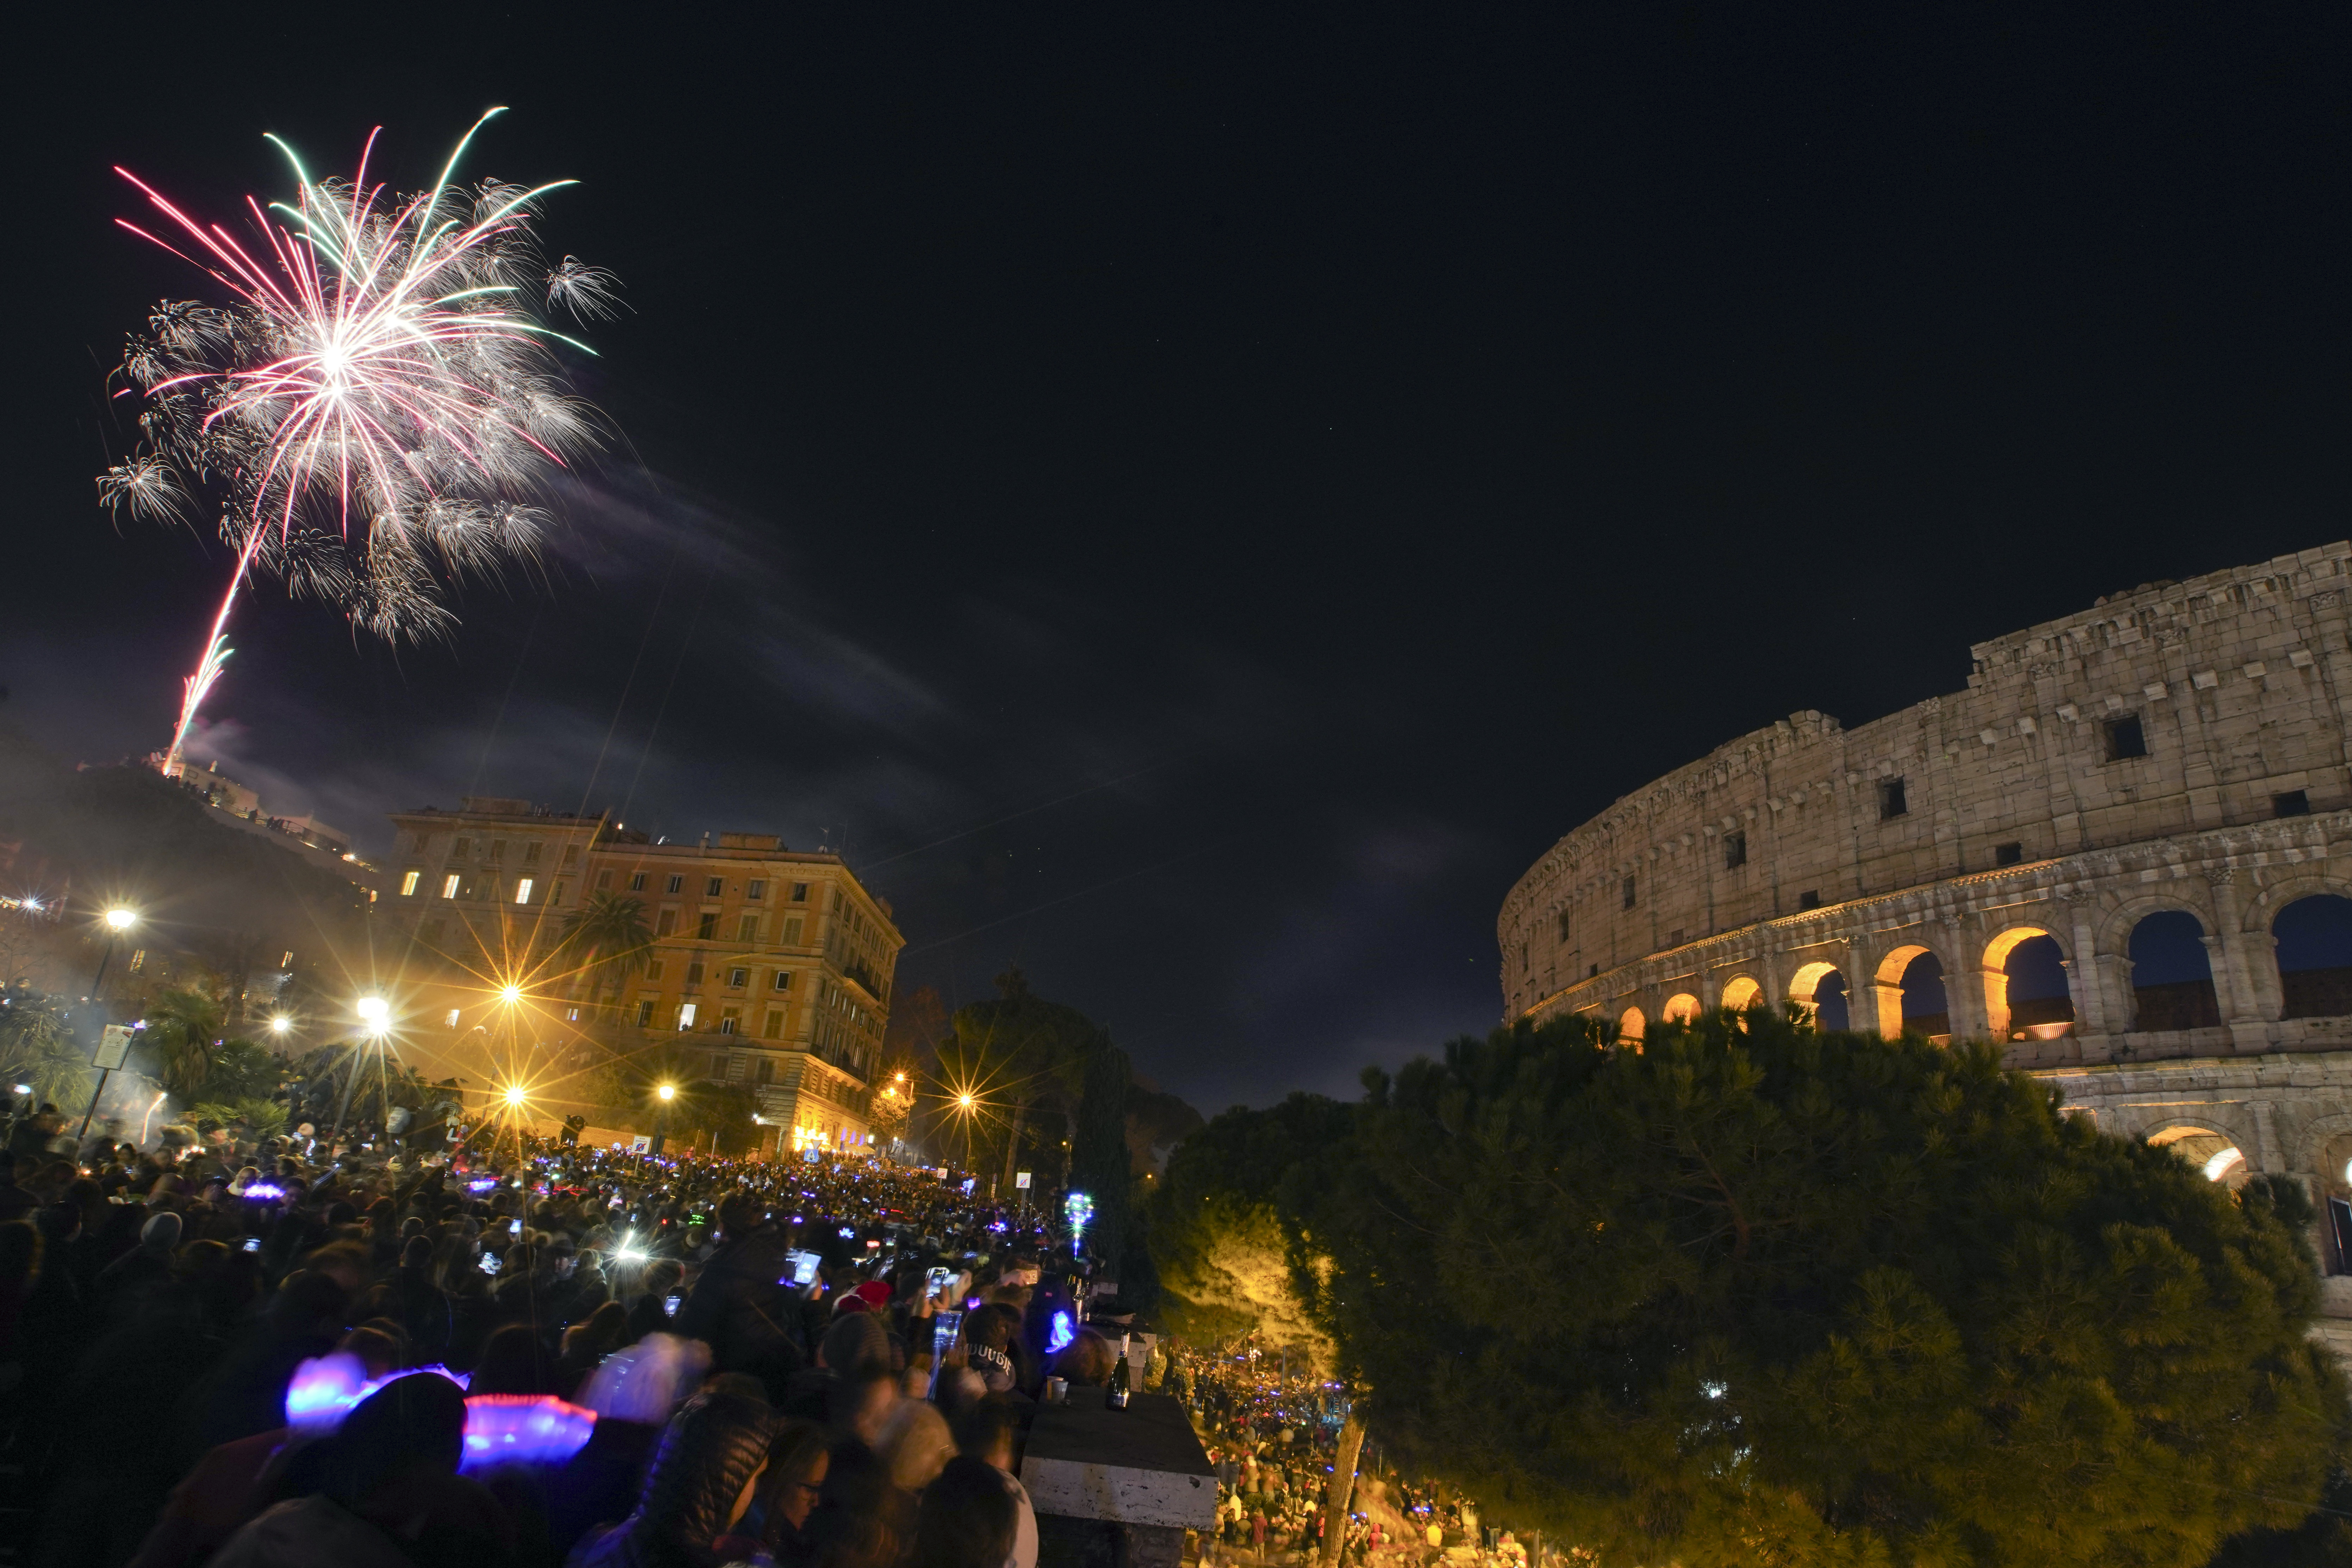 Fireworks explode in the sky over Rome's Colosseum during New Year's celebrations in Rome